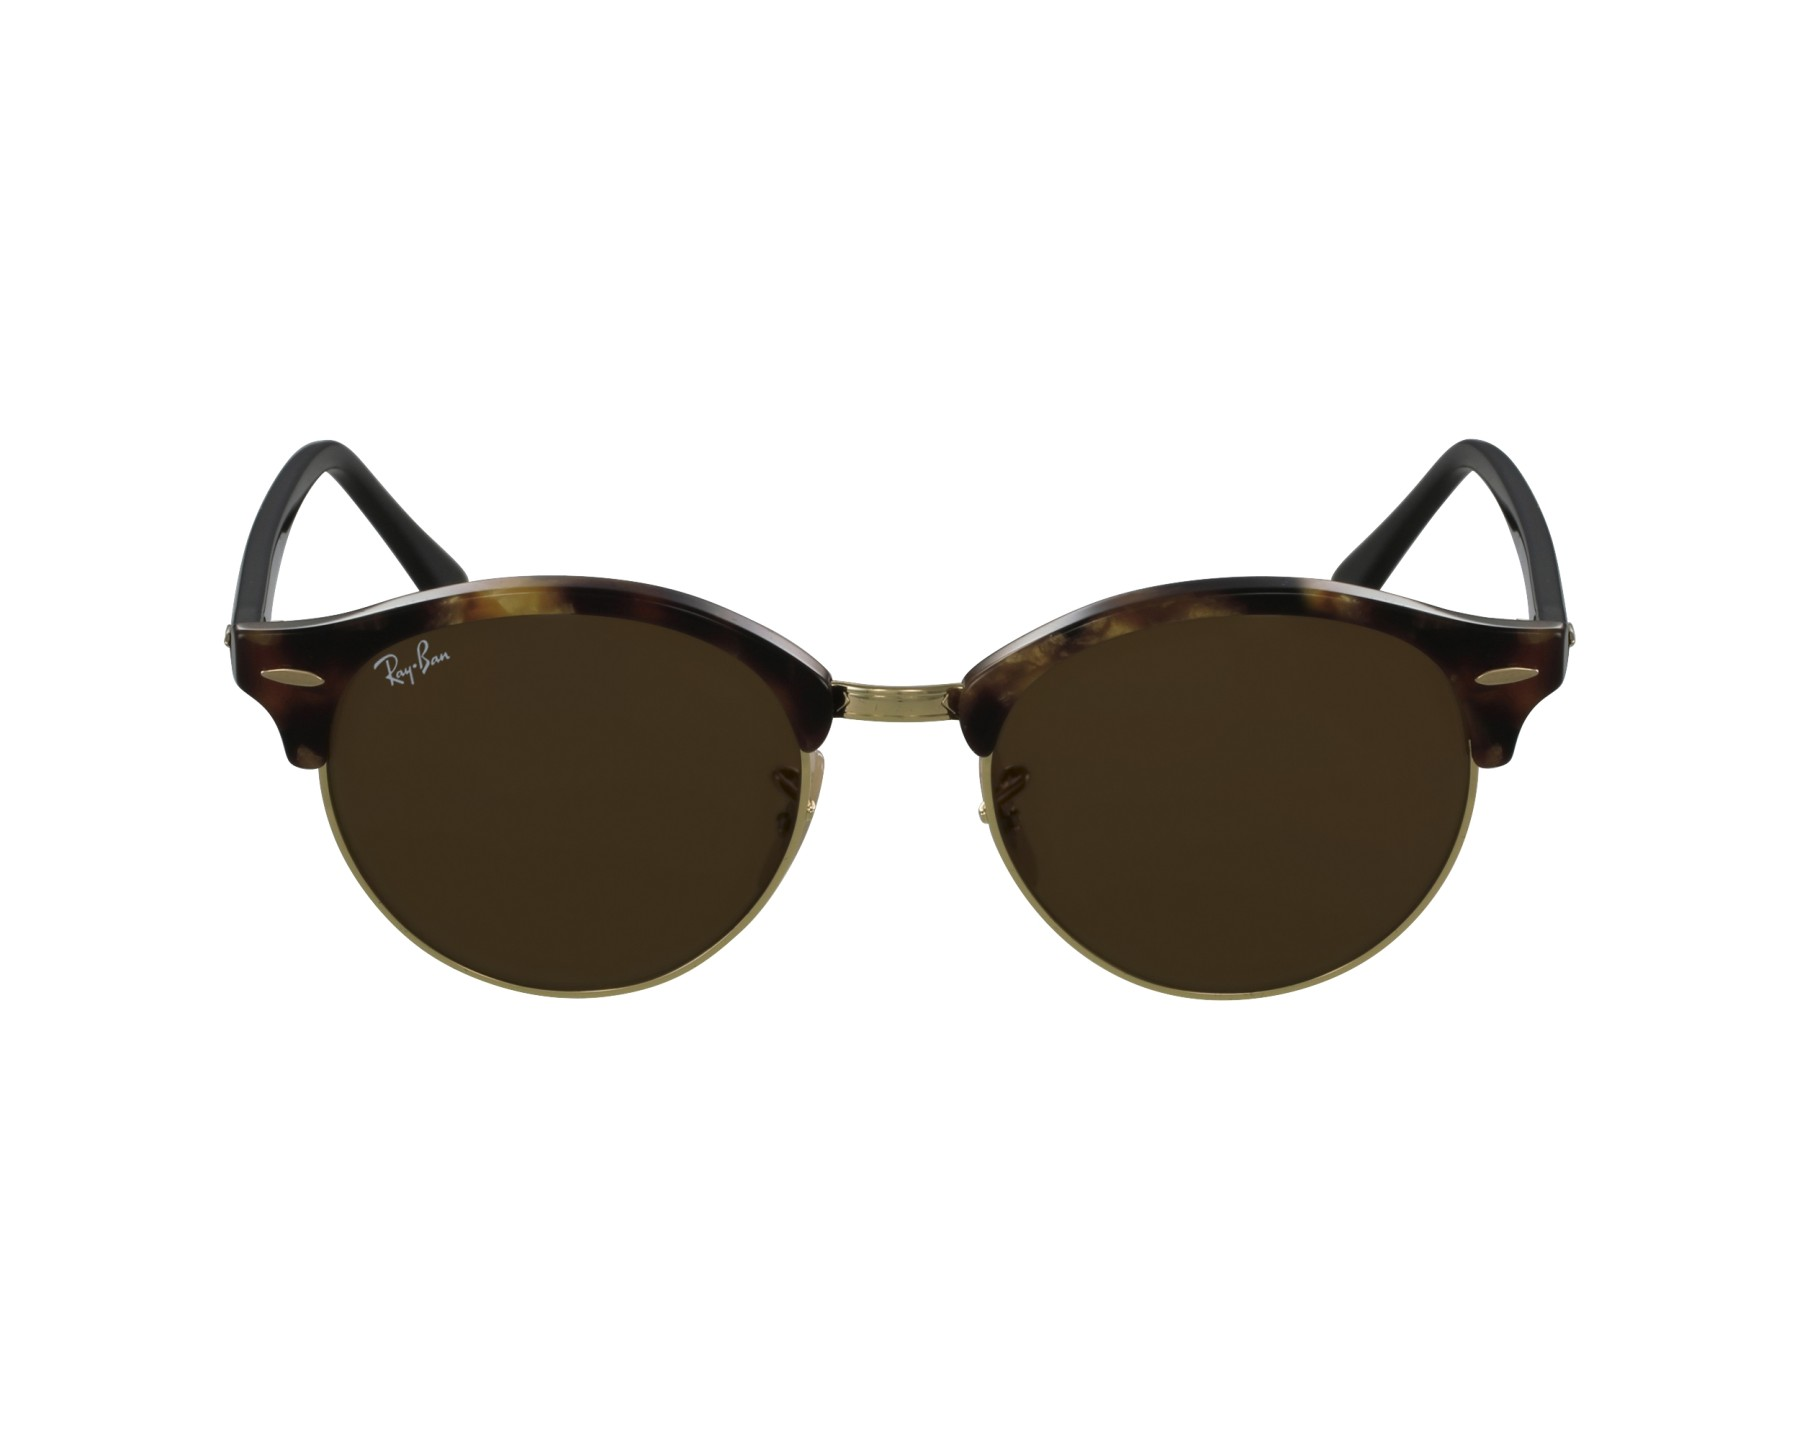 ray ban sunglasses rb 4246 1160 buy now and save 9 visio. Black Bedroom Furniture Sets. Home Design Ideas